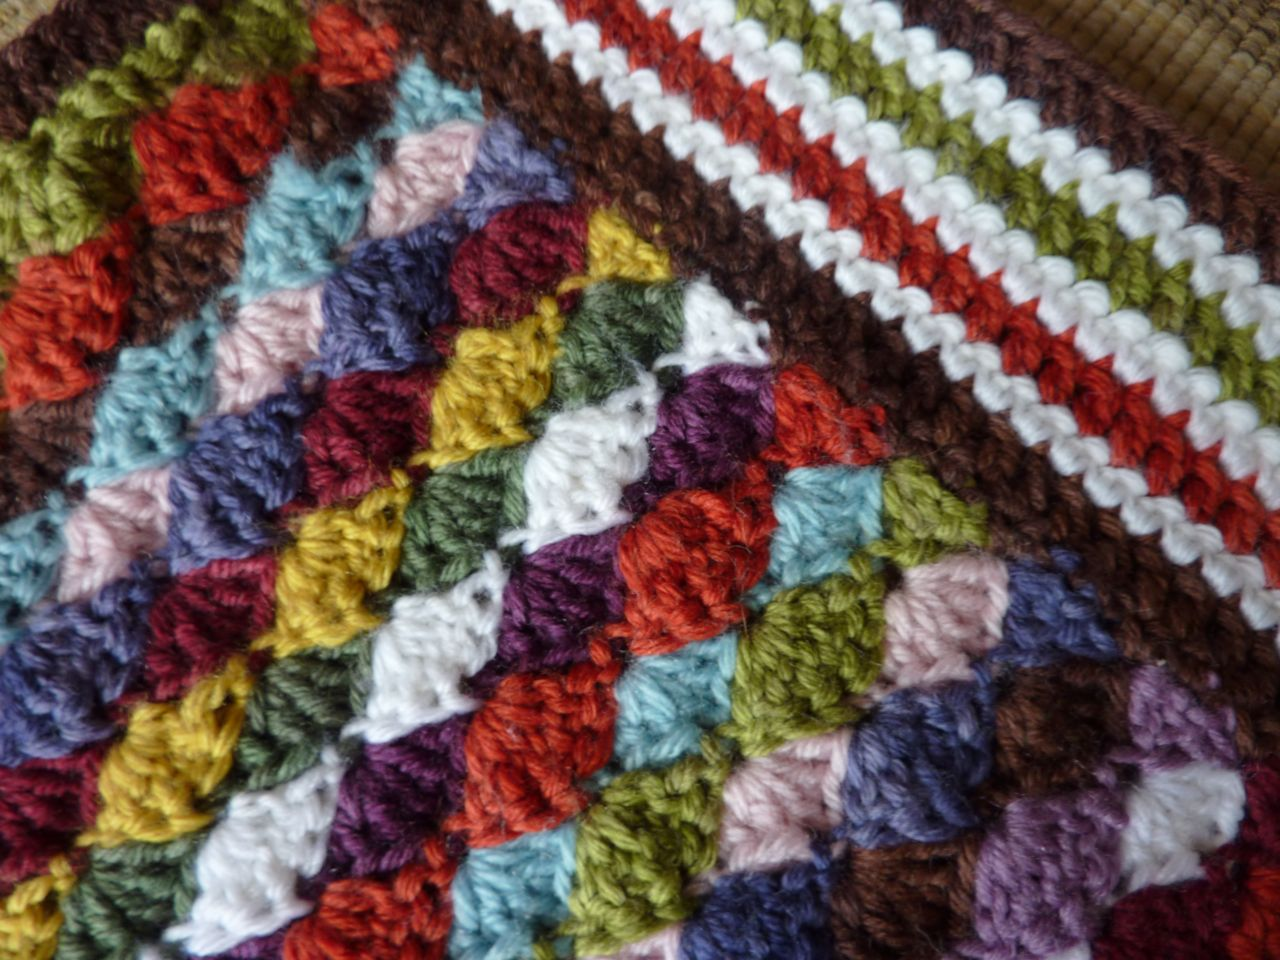 How Do I Make an Easy Crochet Baby Blanket?